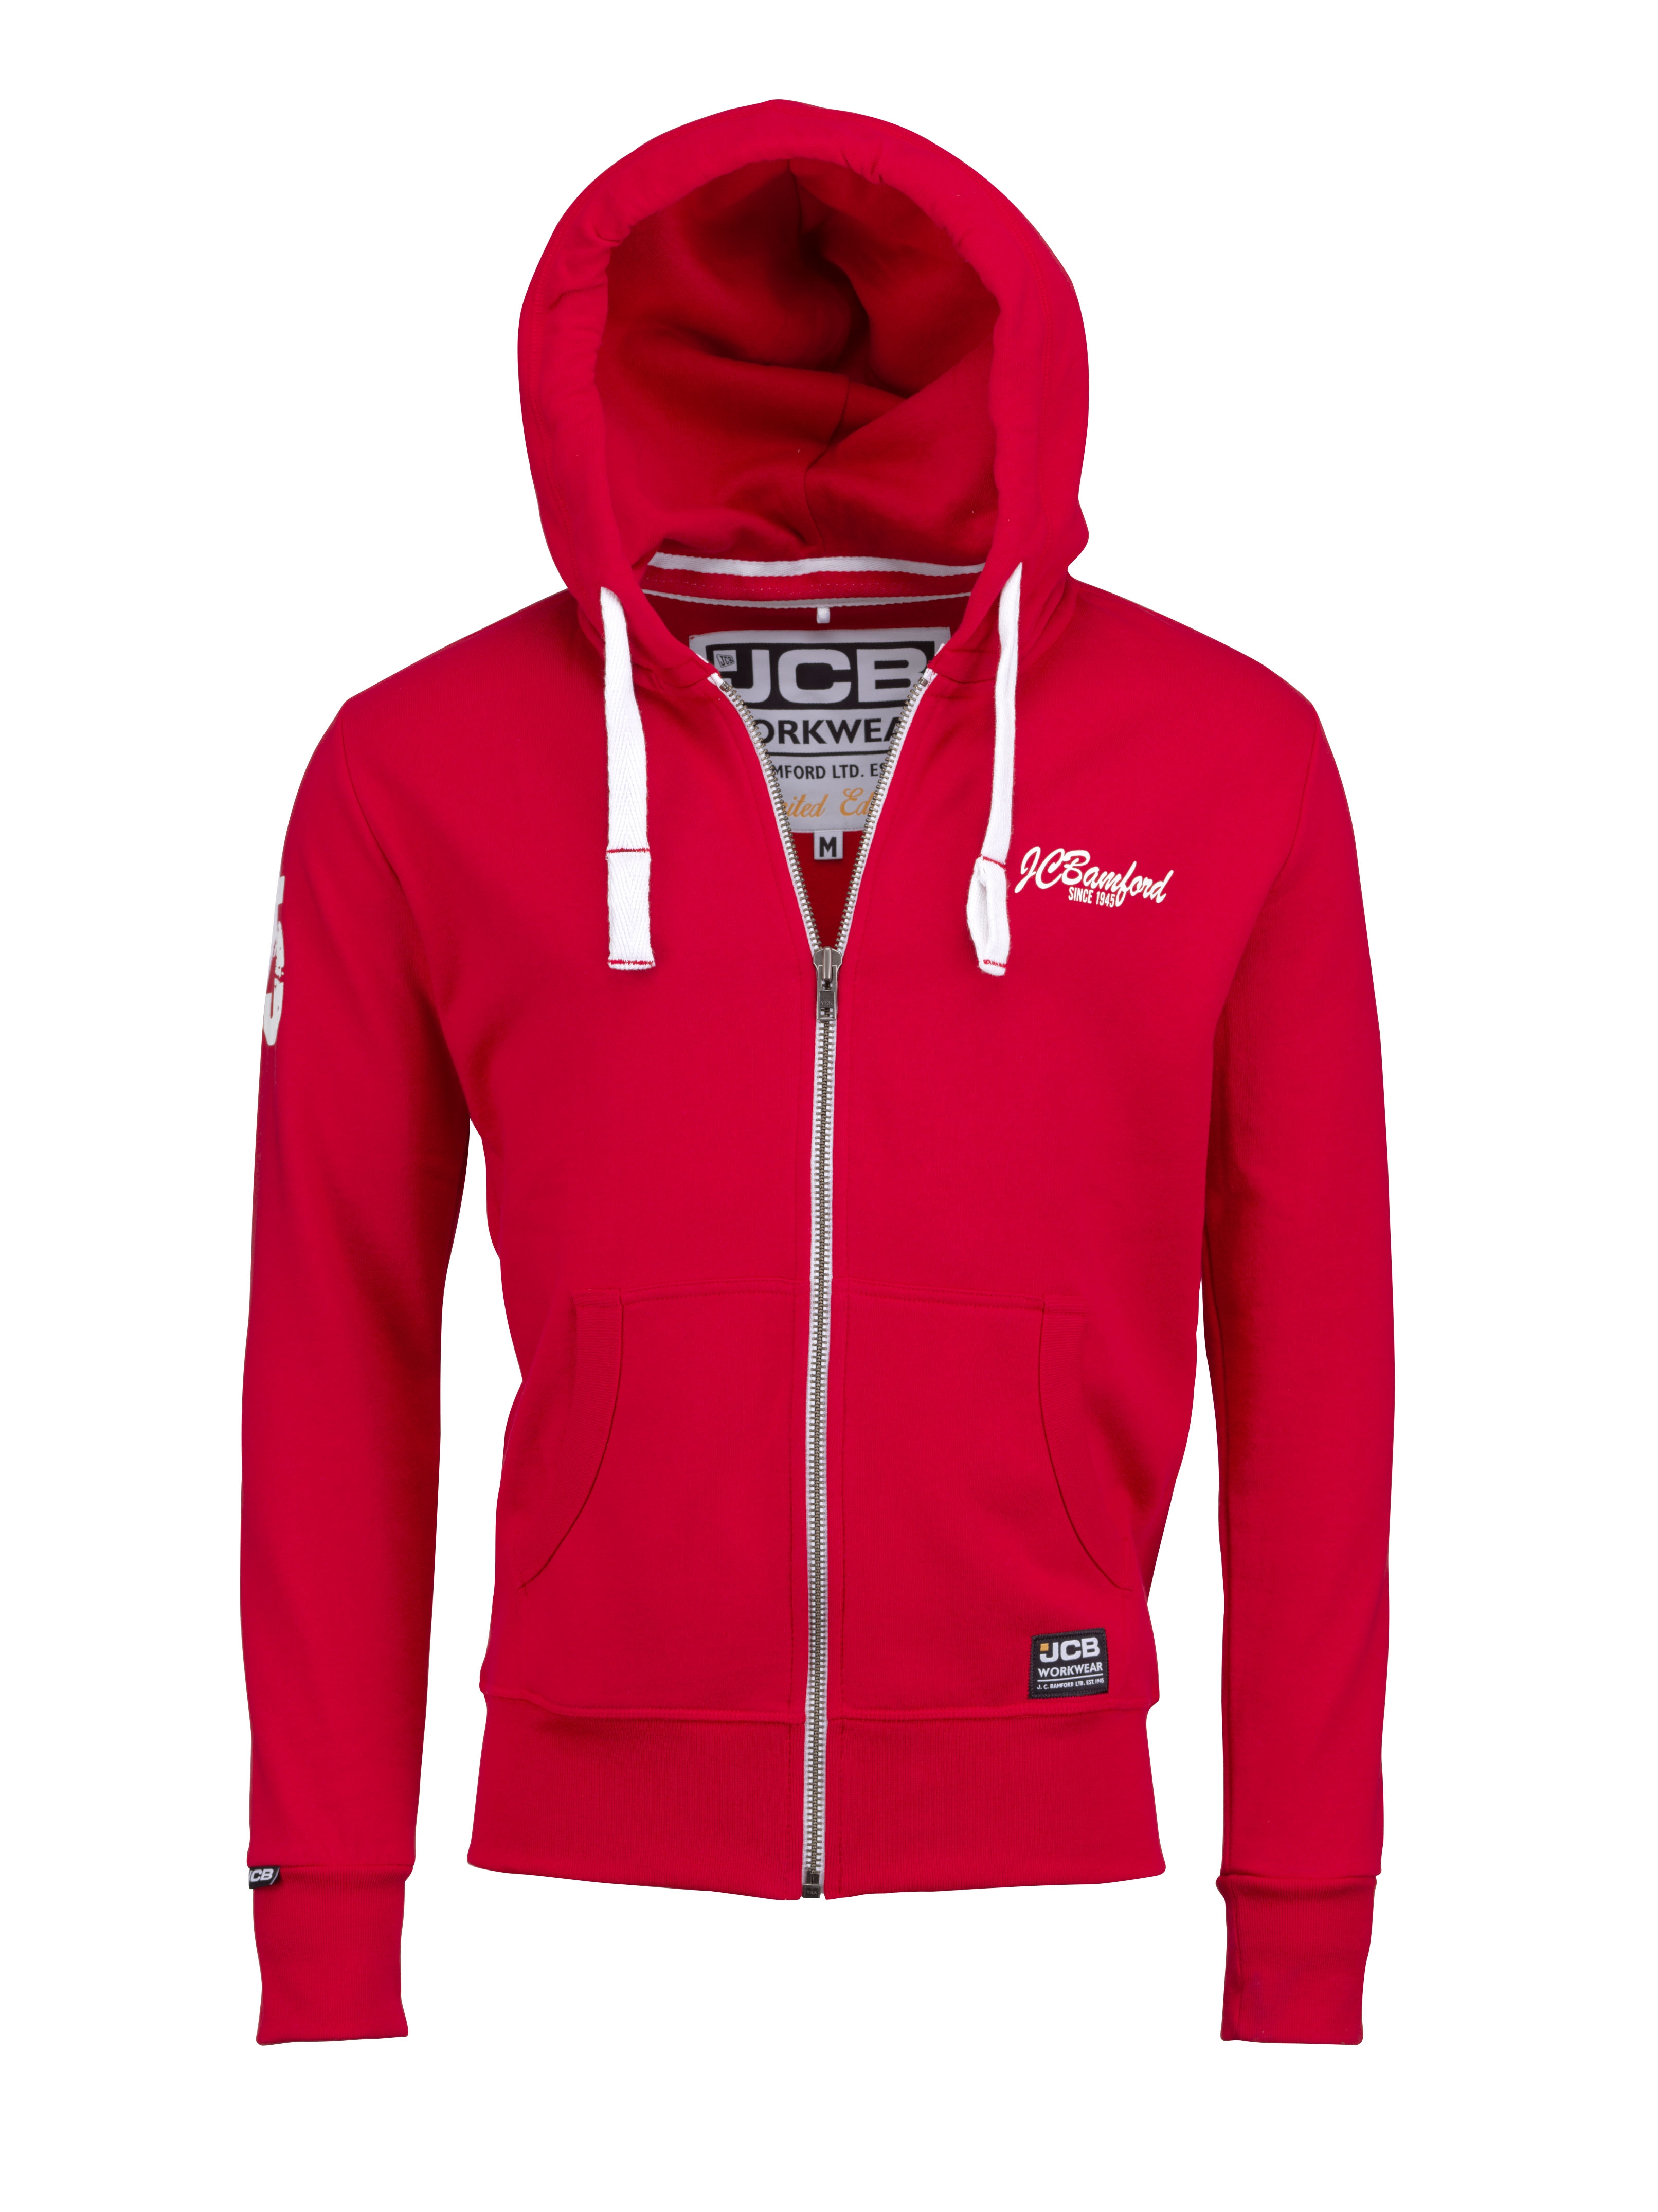 JCB Limited Edition Hoodie Red Work Hooded Jumper